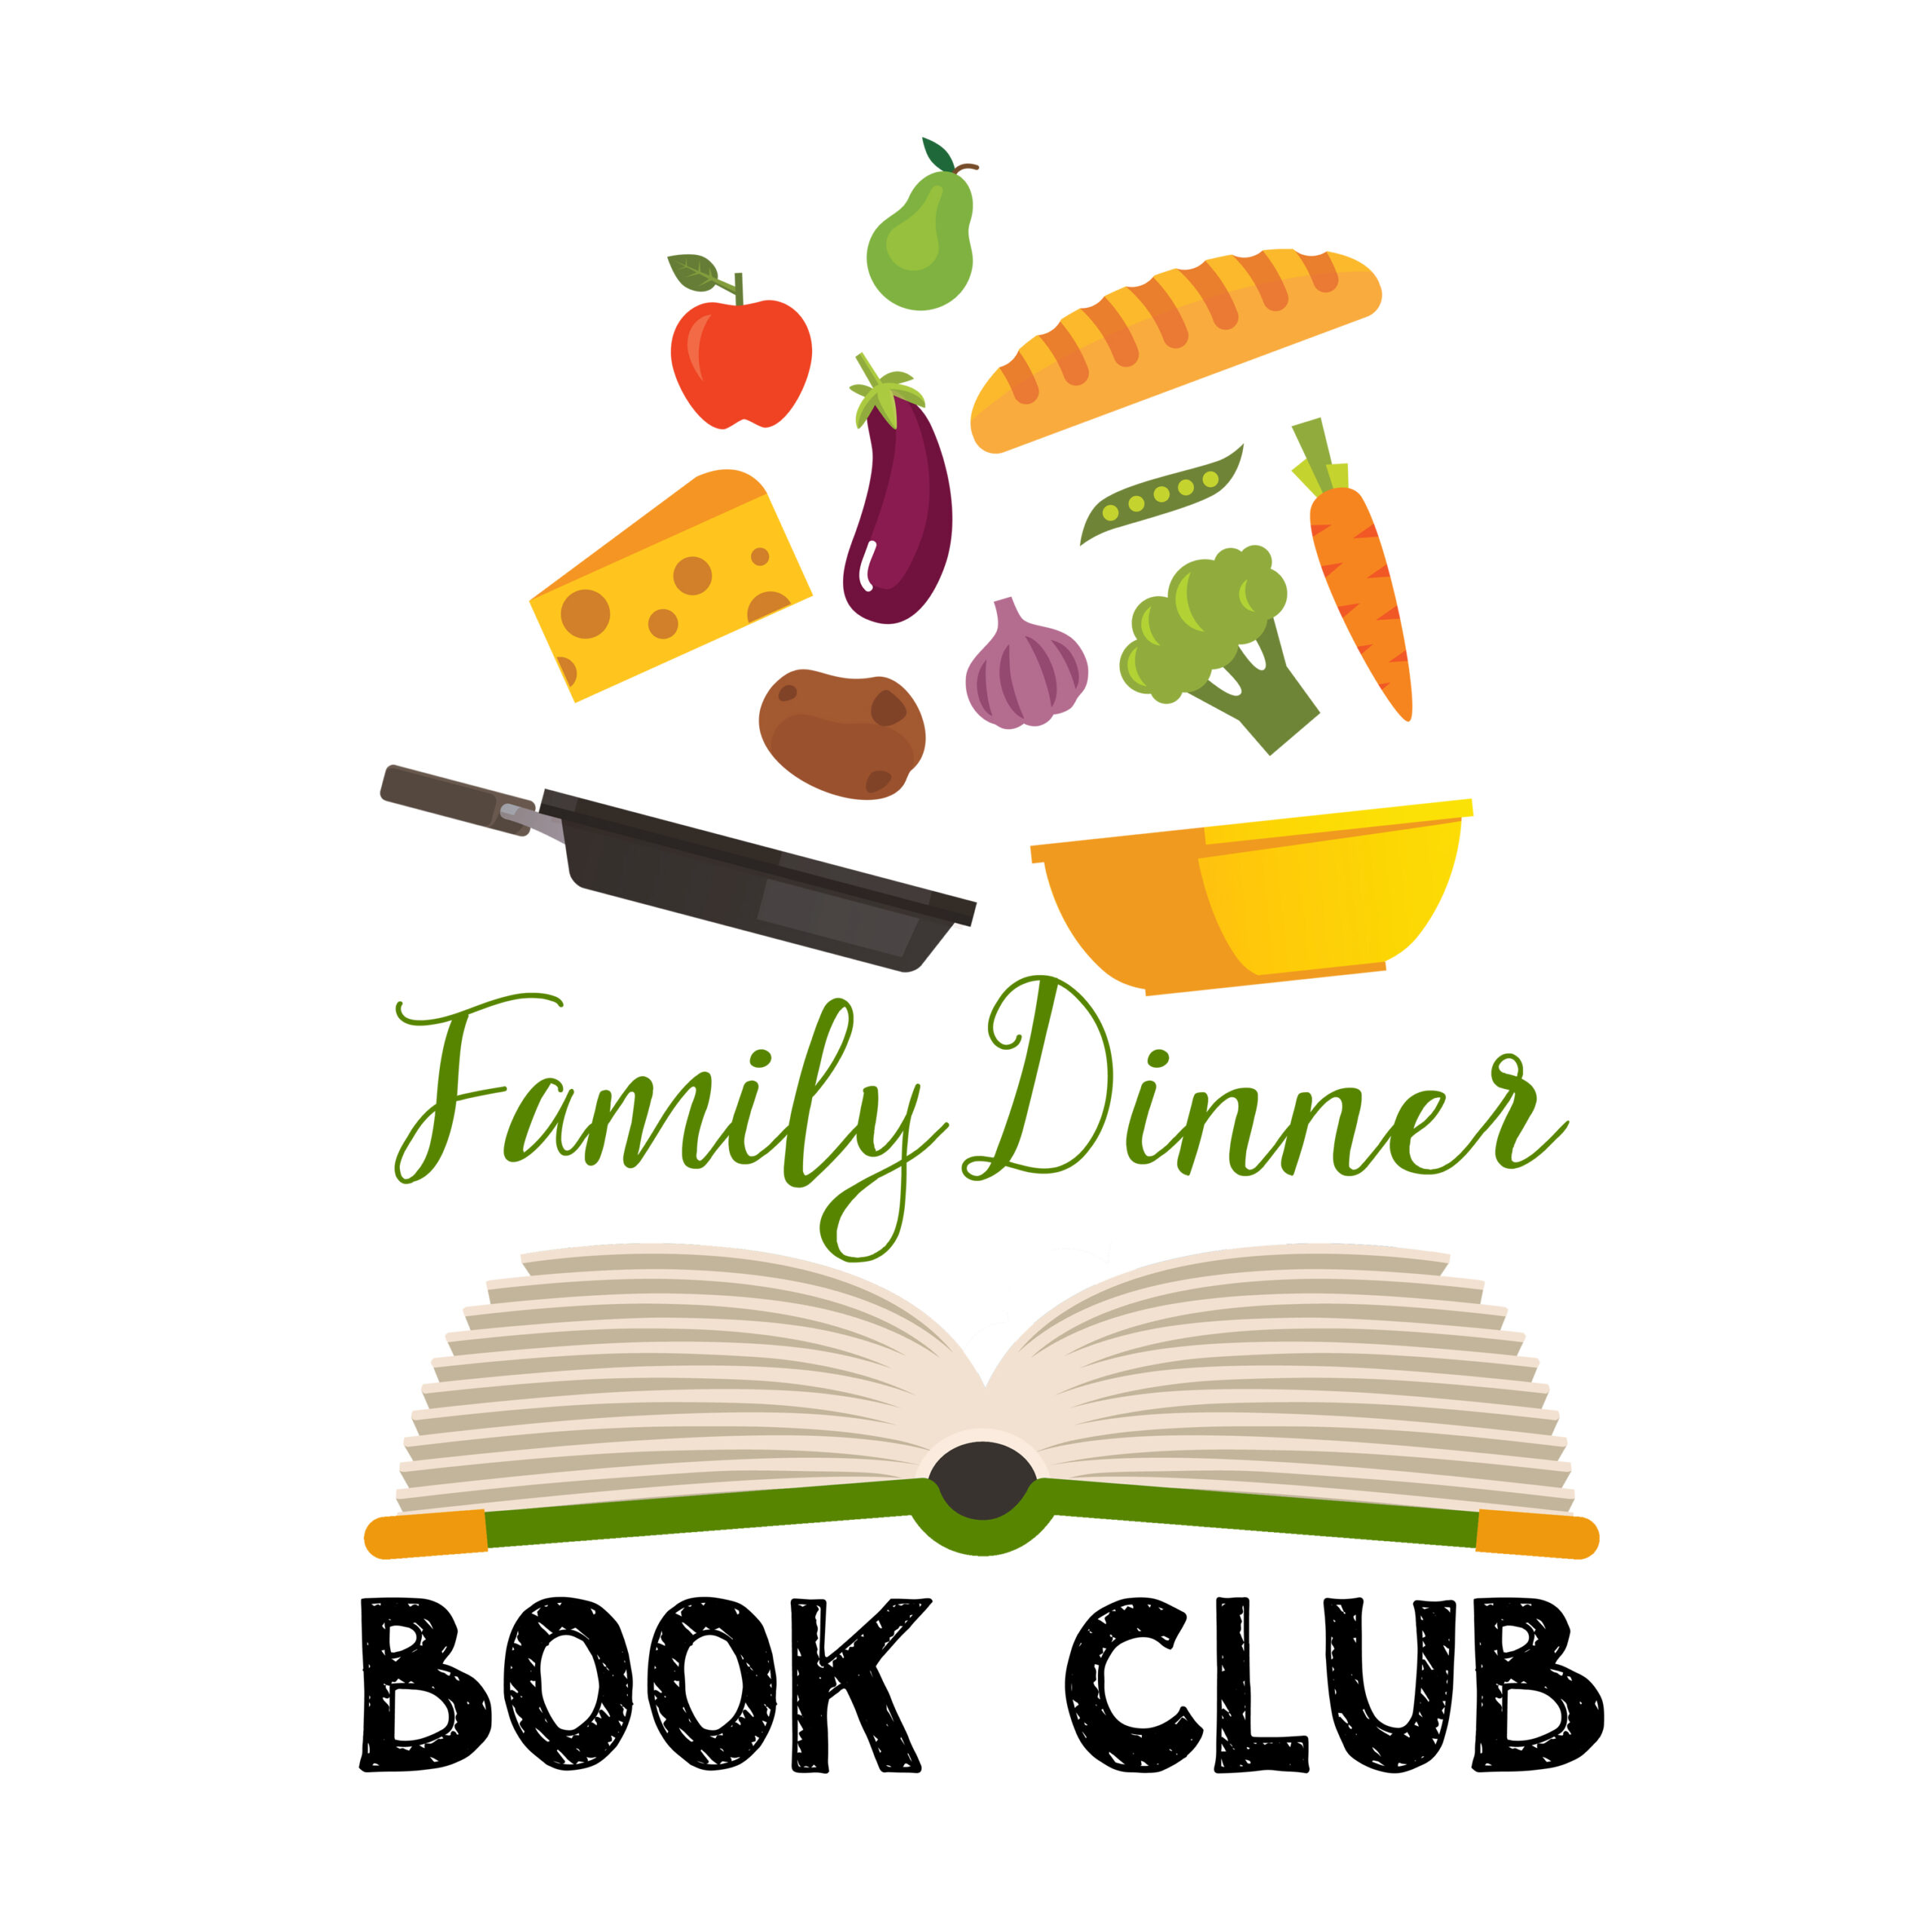 Start A Family Dinner Book Club Growing Book By Book